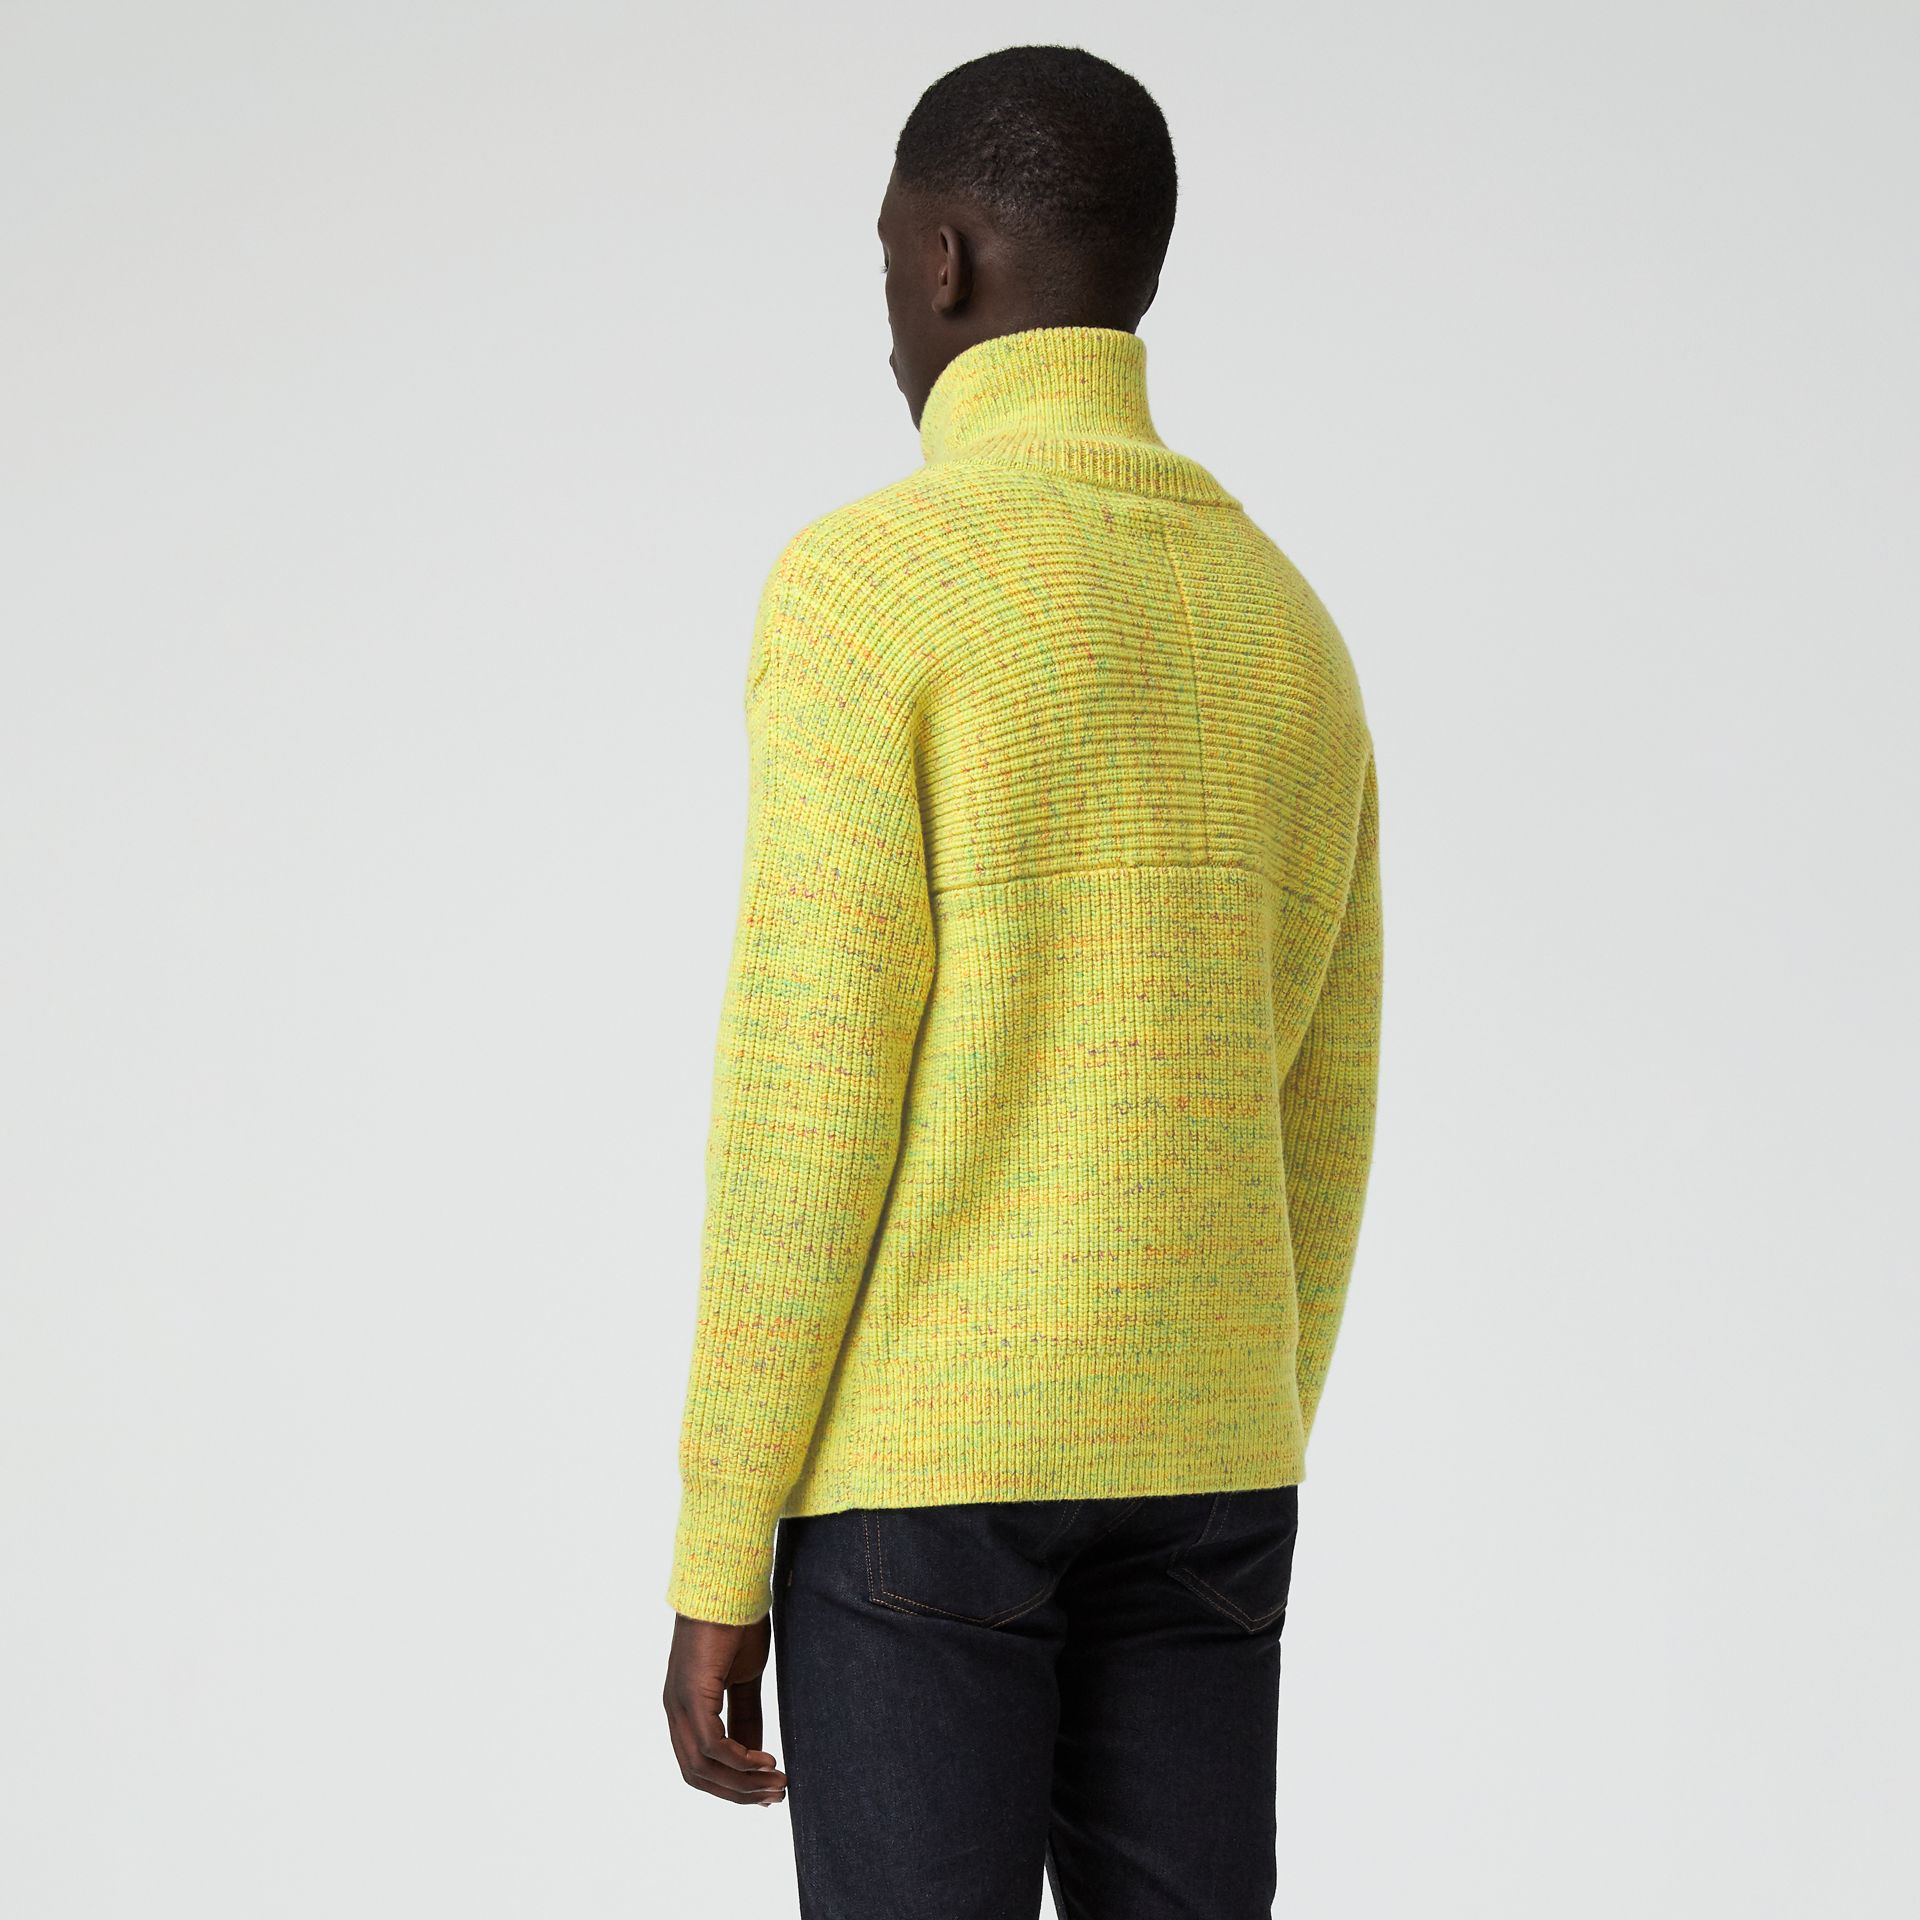 Rib Knit Wool Cashmere Blend Half-zip Sweater in Vibrant Yellow - Men | Burberry - gallery image 2